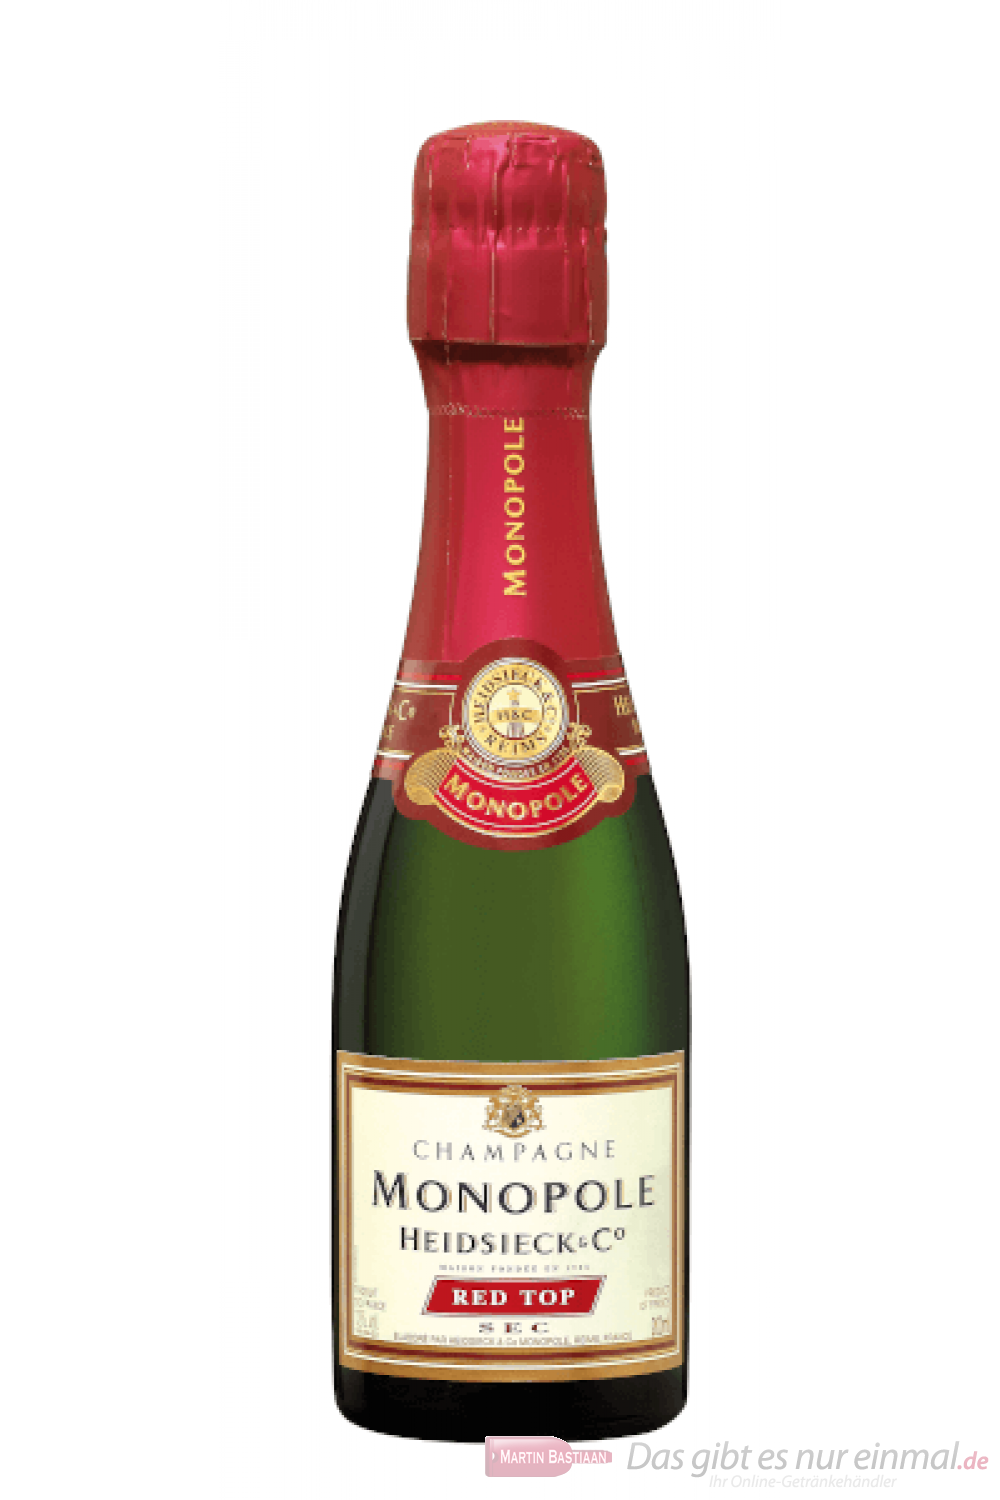 Heidsieck Monopole Red Top Brut Champagner 0,2l Piccolo Flasche